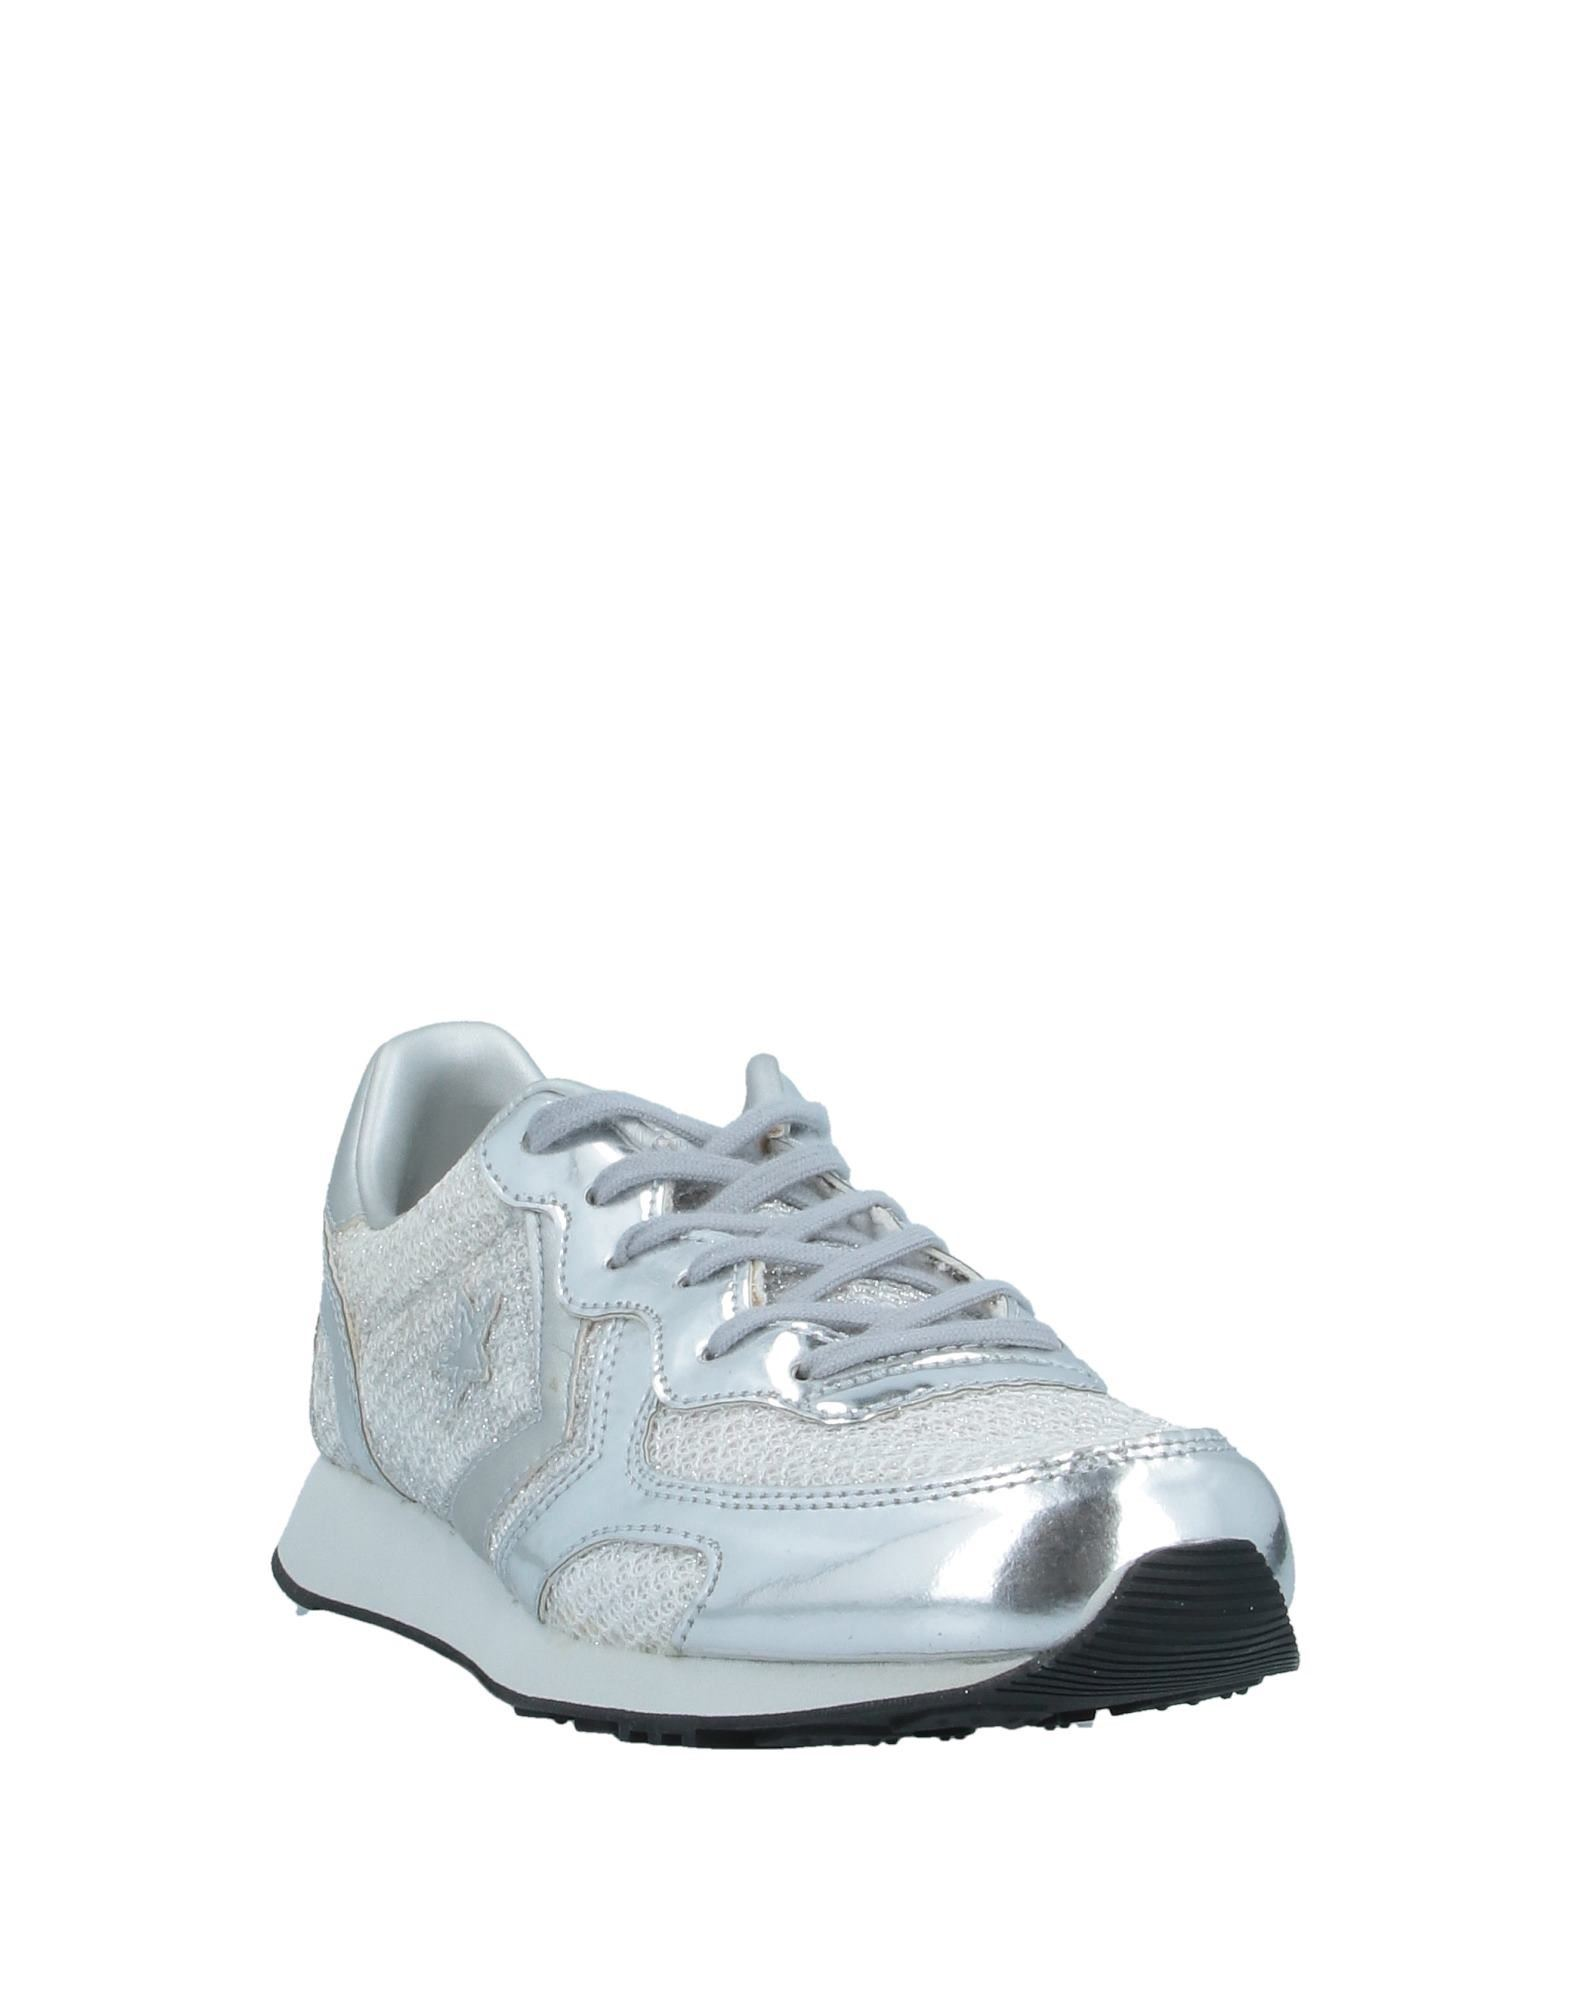 Sneakers Converse Cons Auckland Racer Ox Gli Mesh/Syn - Femme - Sneakers Converse Cons sur